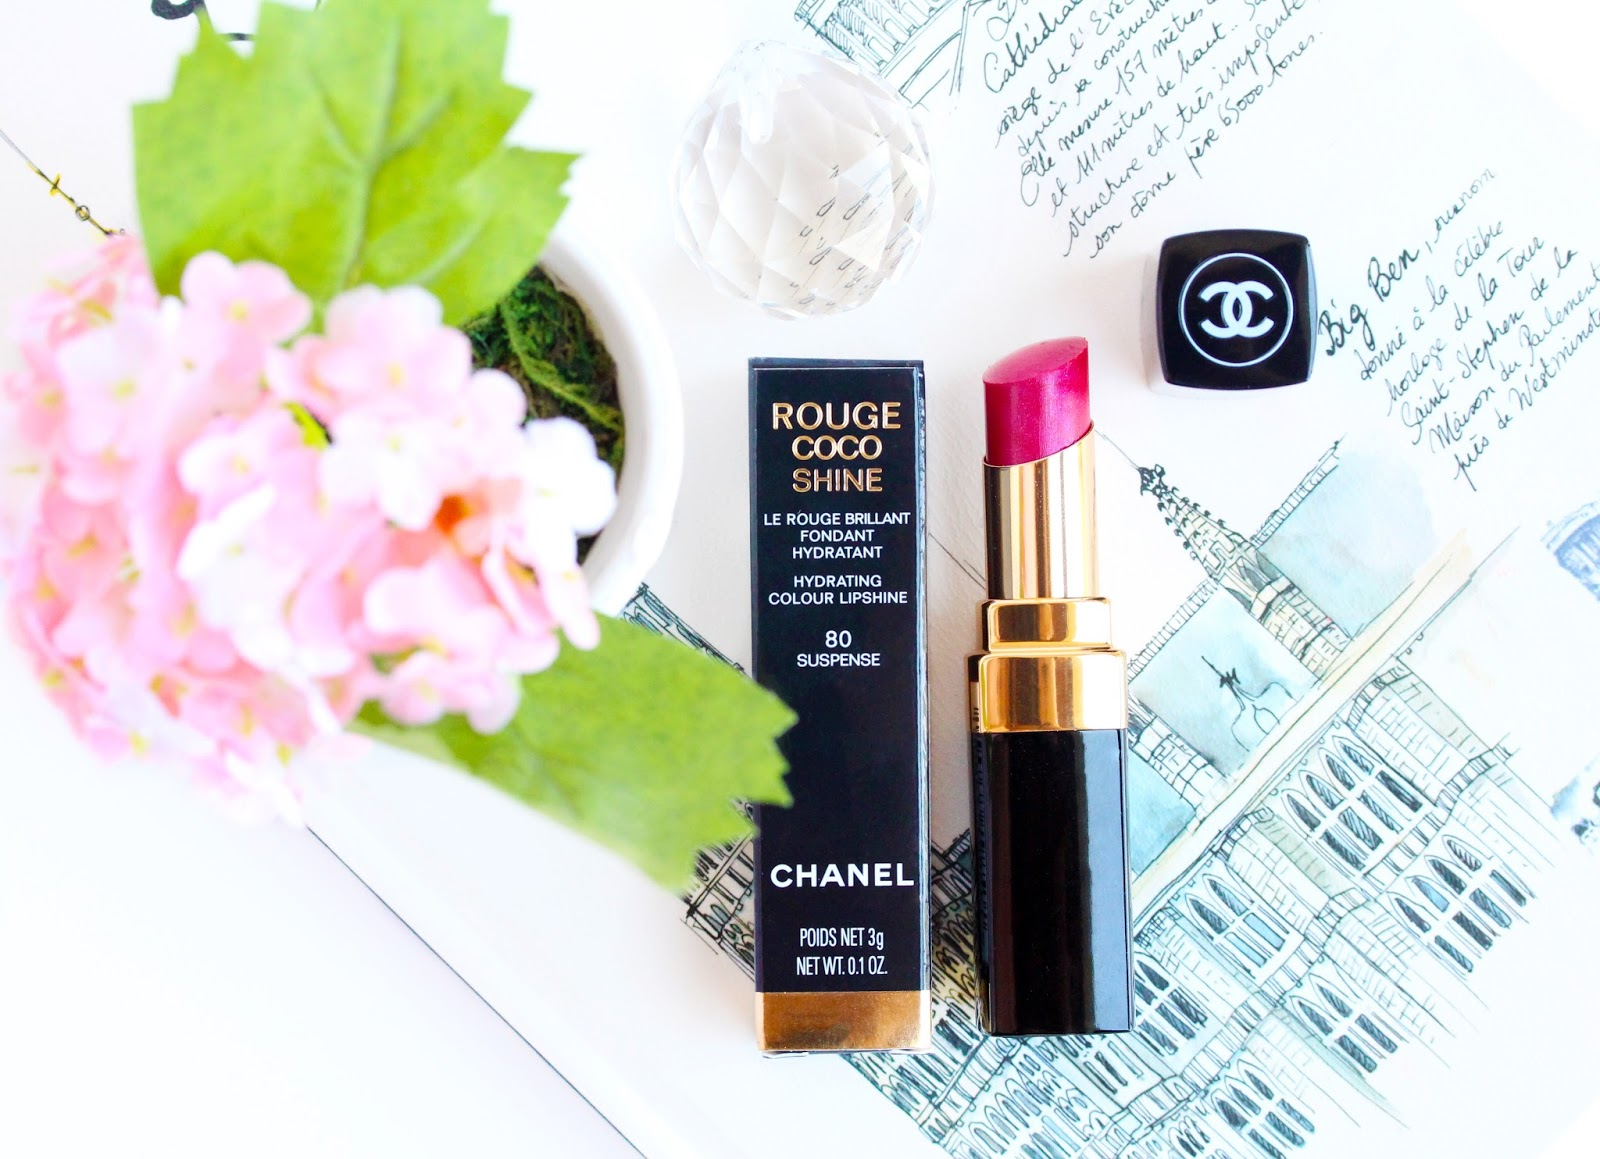 Chanel Rouge Coco Shine Lipstick in Suspense